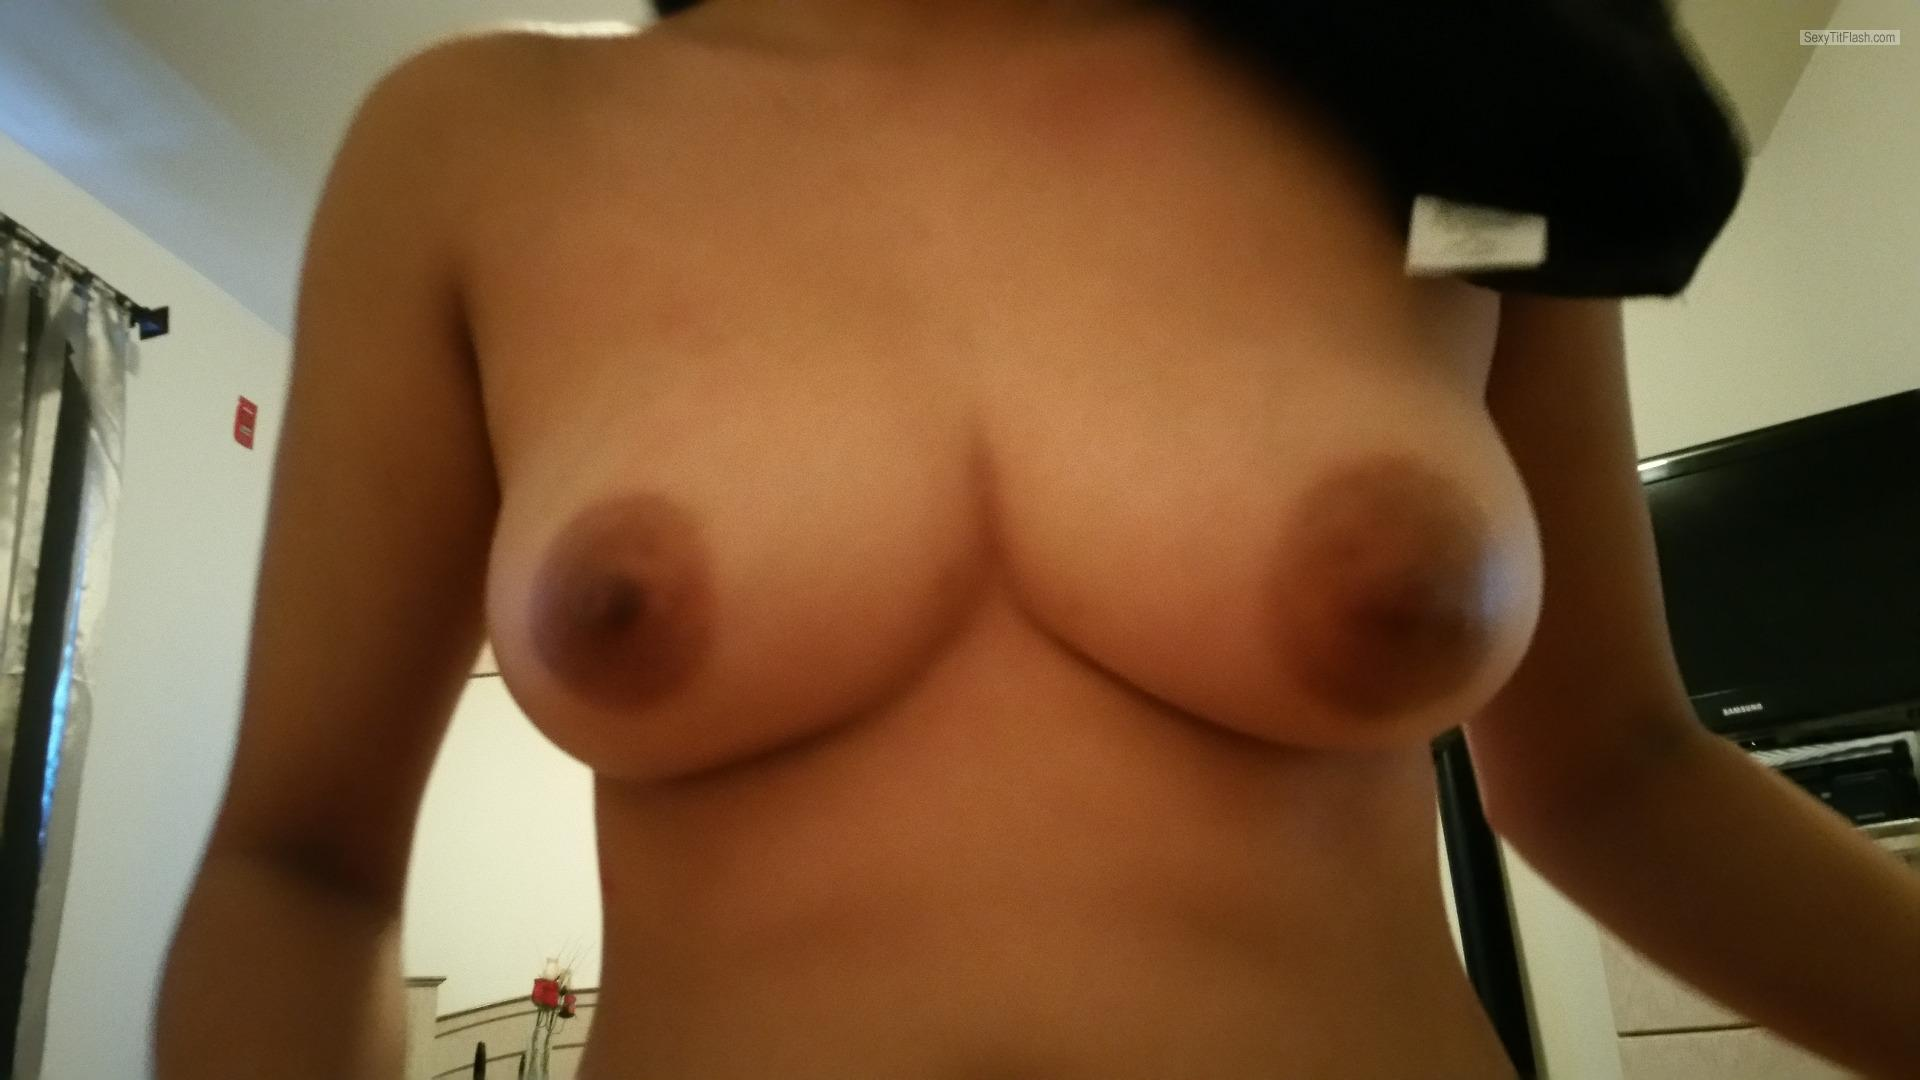 My Big Tits Selfie by Sarah